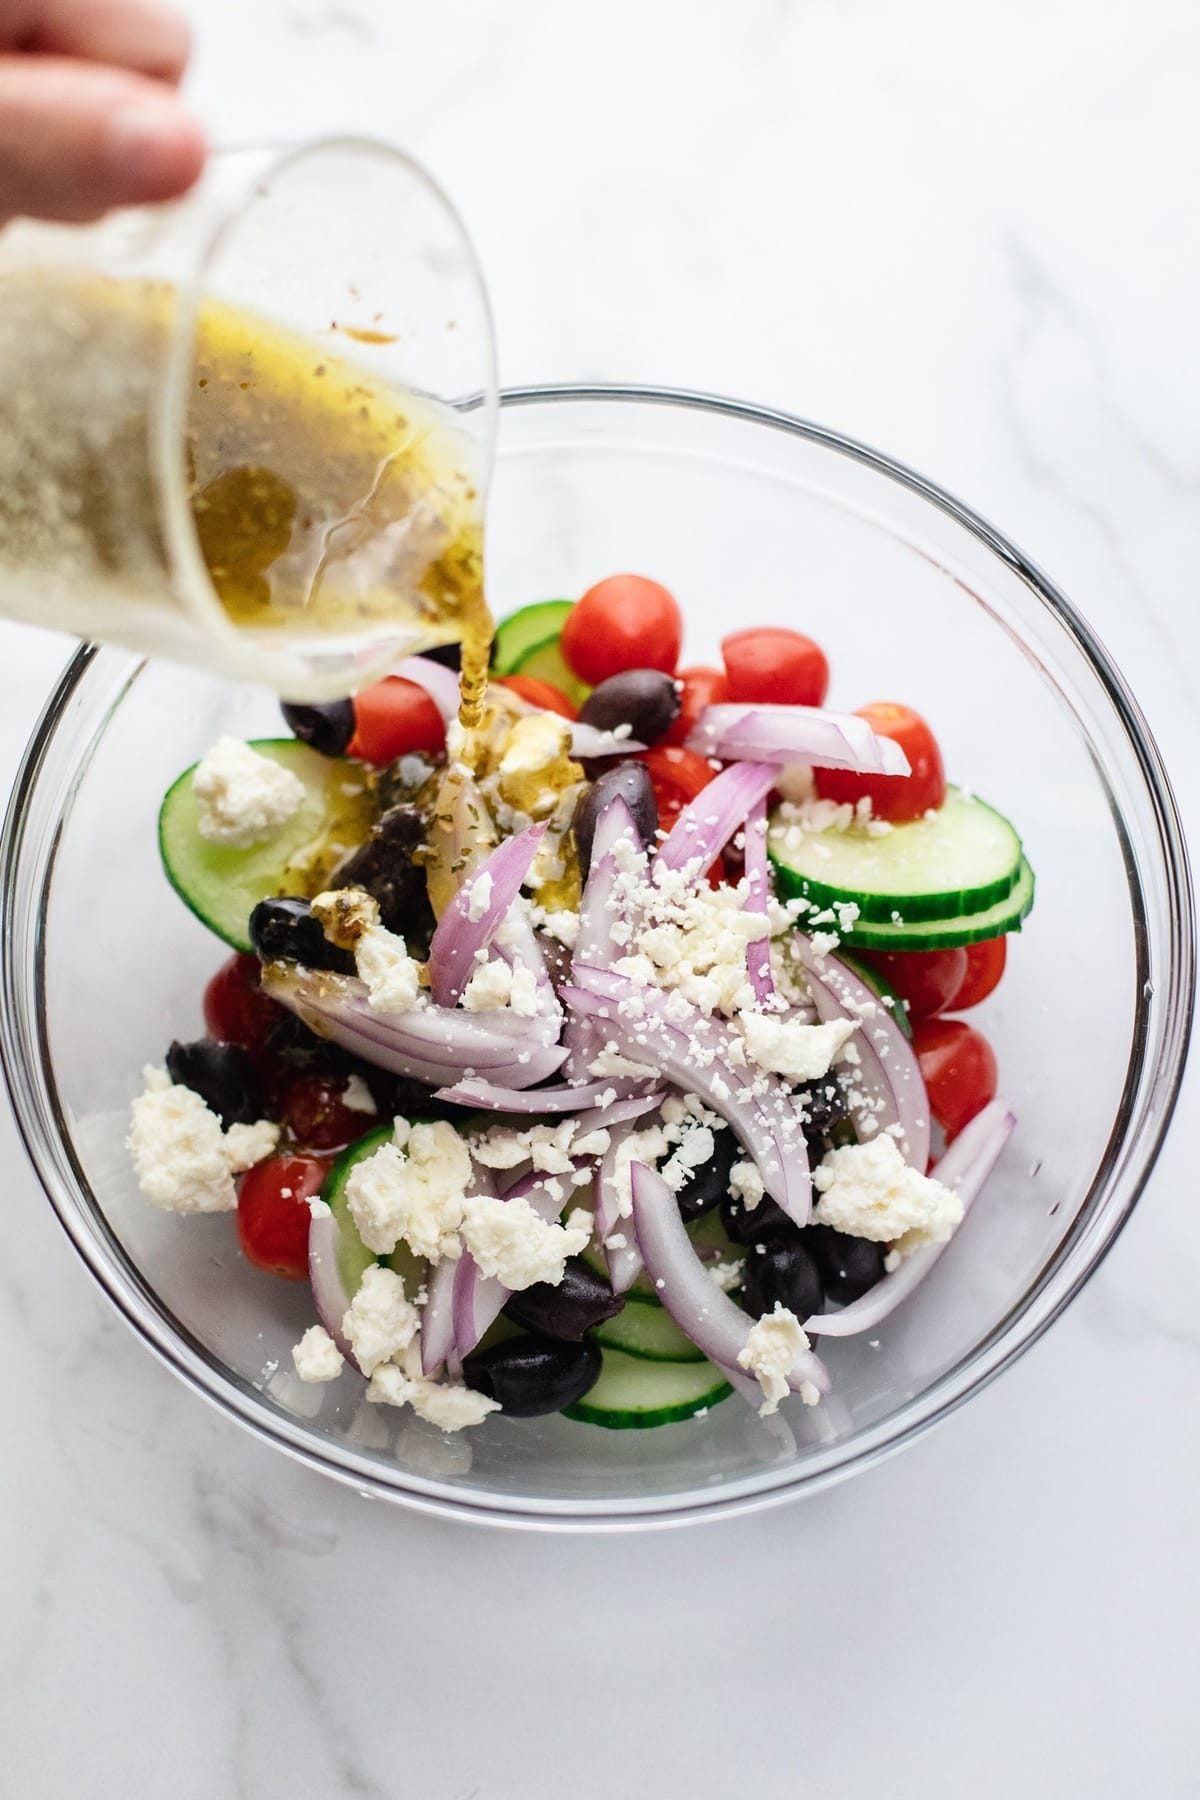 Dressing being poured over a greek salad.